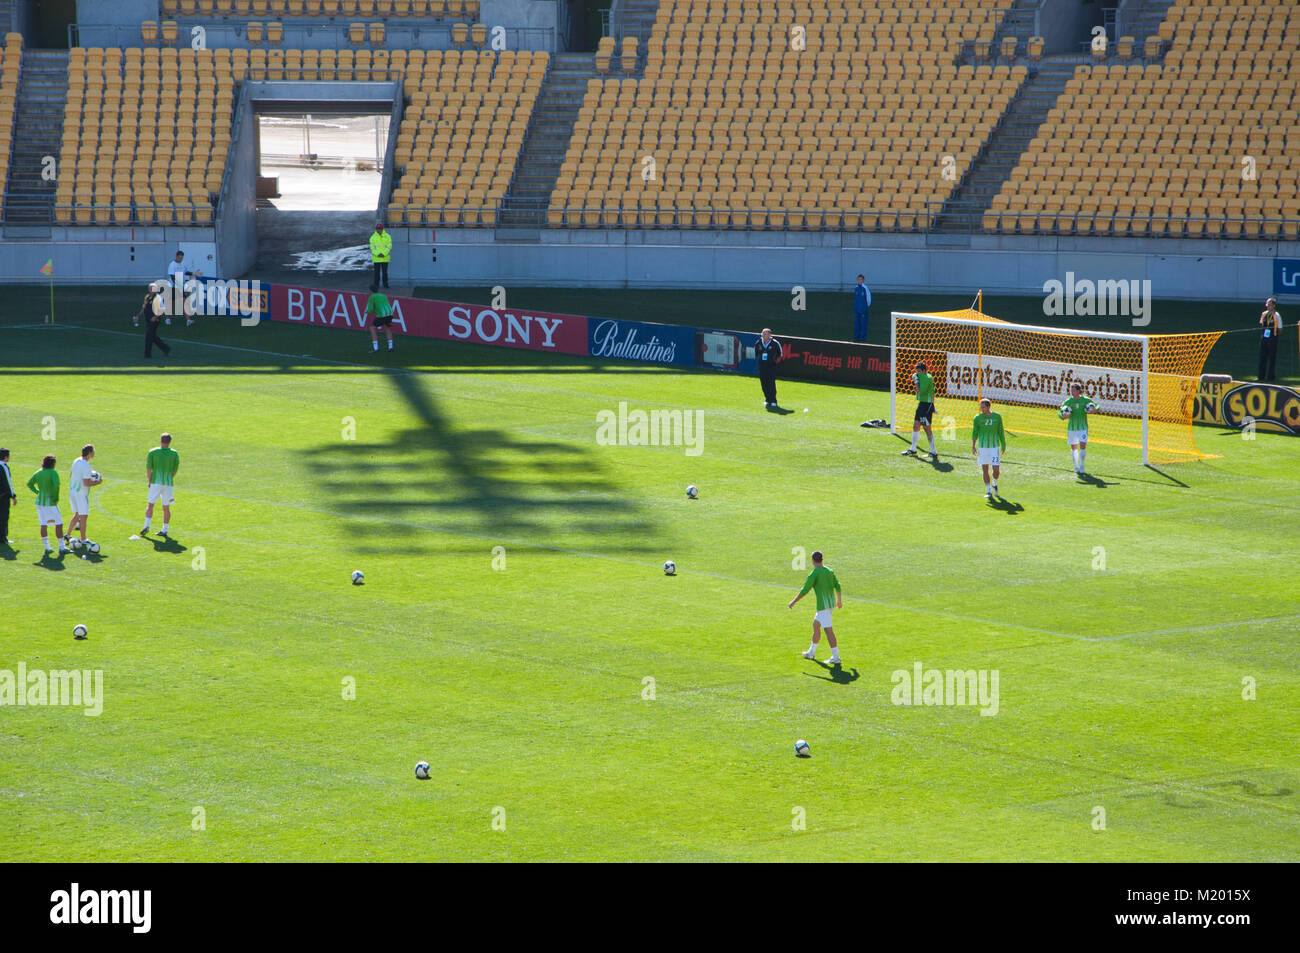 Soccer Players Warming Up - Stock Image